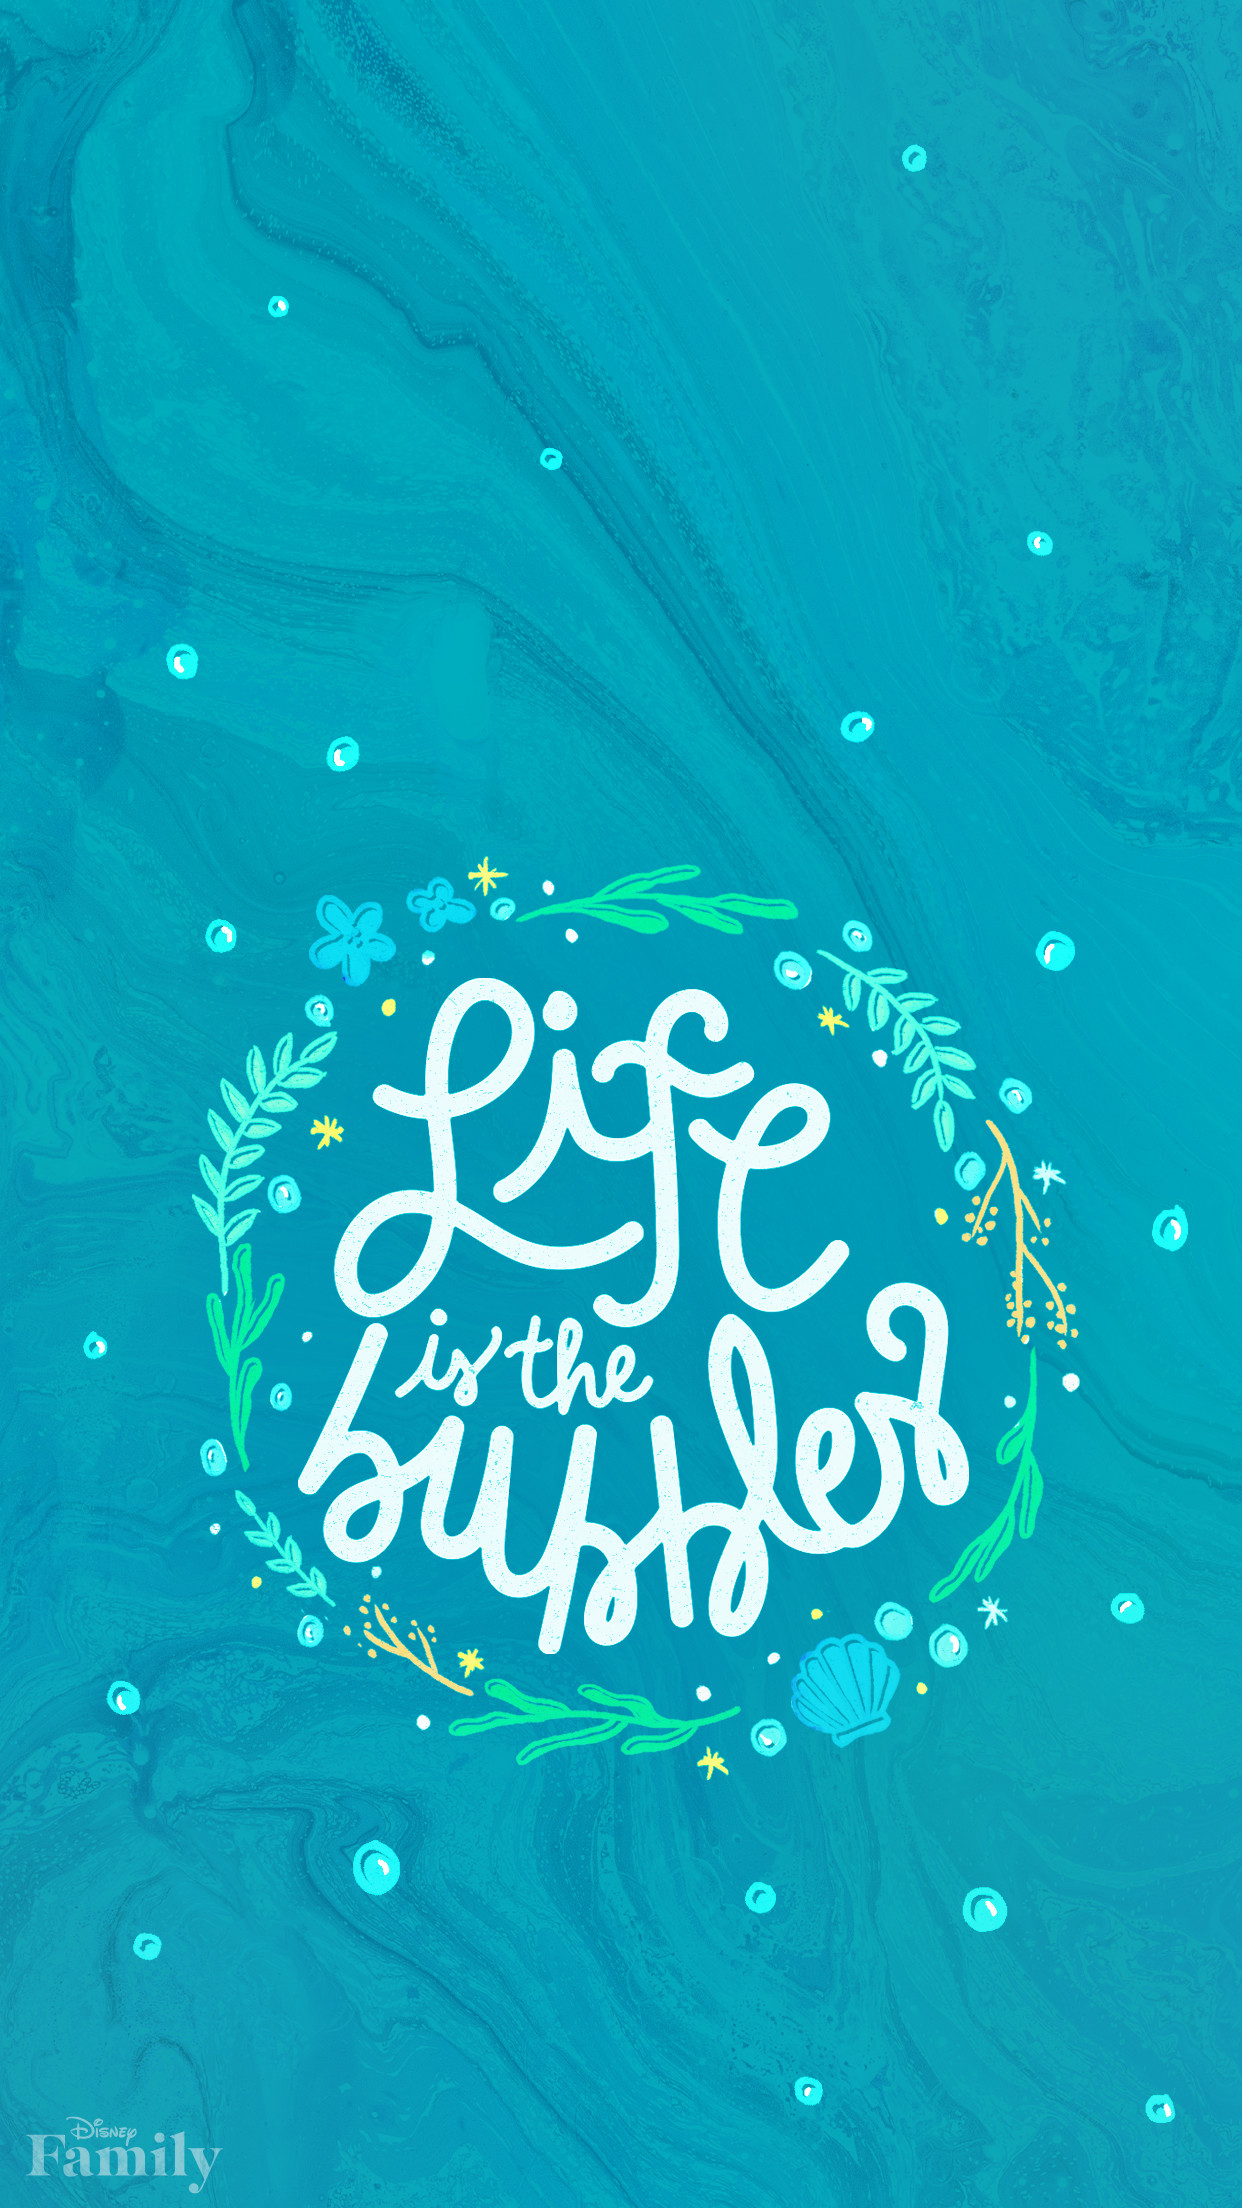 Find more inspirational phone backgrounds on Disney Style.